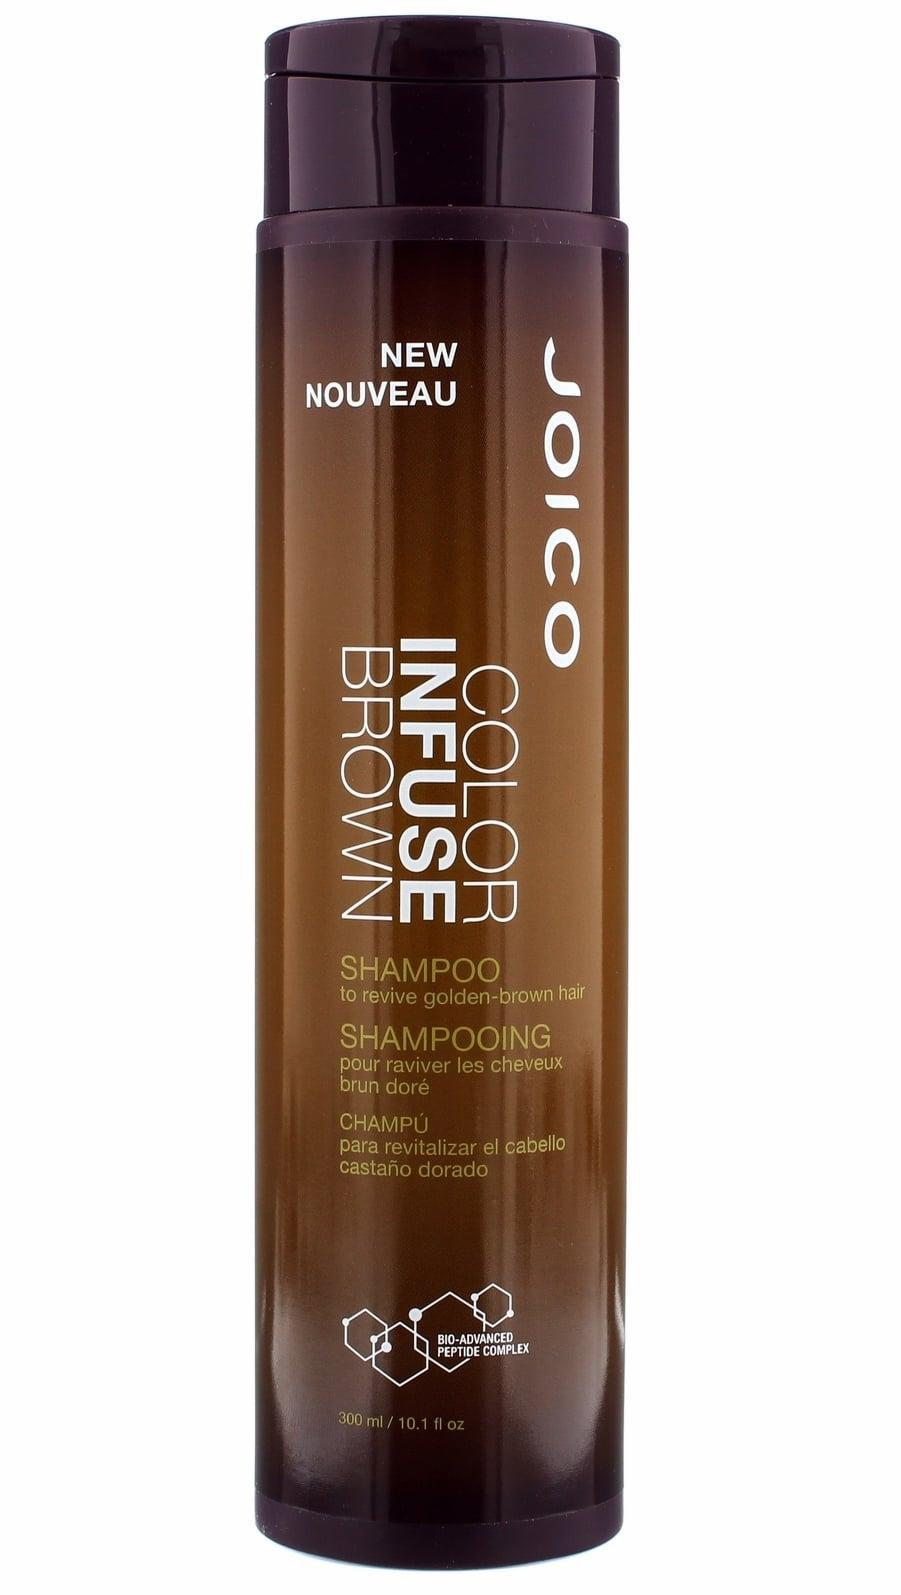 <p>If you're looking to take your hair color to the next level, this <span>Joico Color Infuse Brown Shampoo</span> ($21) will do the trick. It includes a subtle color tint that makes hair appear darker.</p>